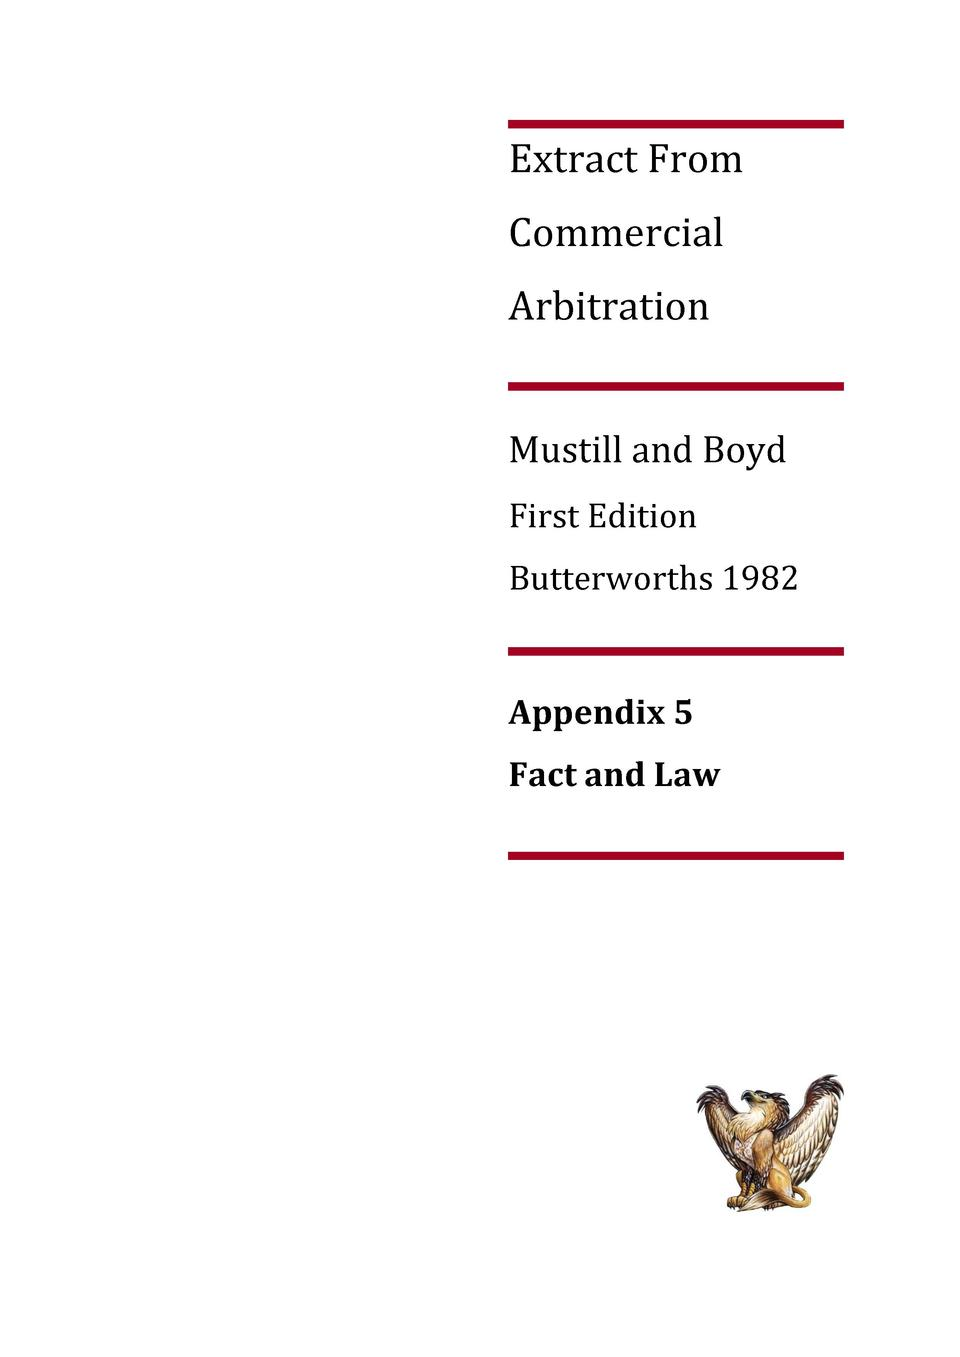 Extract From Commercial Arbitration Mustill and Boyd First Edition Butterworths 1982  Appendix 5 Fact and Law